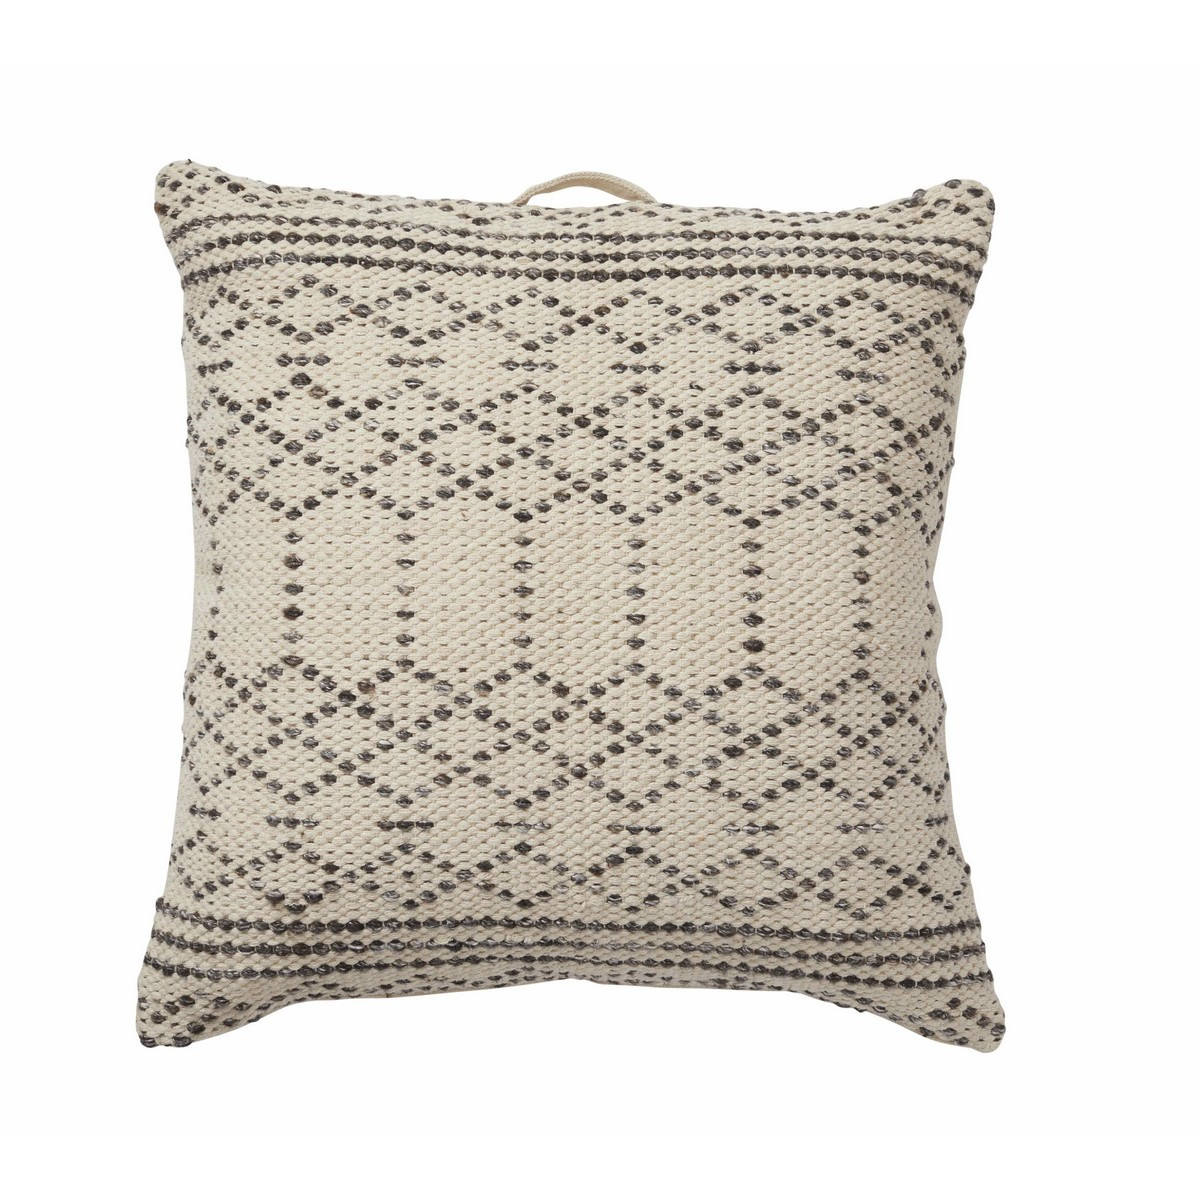 Suki Wool & Cotton Floor Cushion